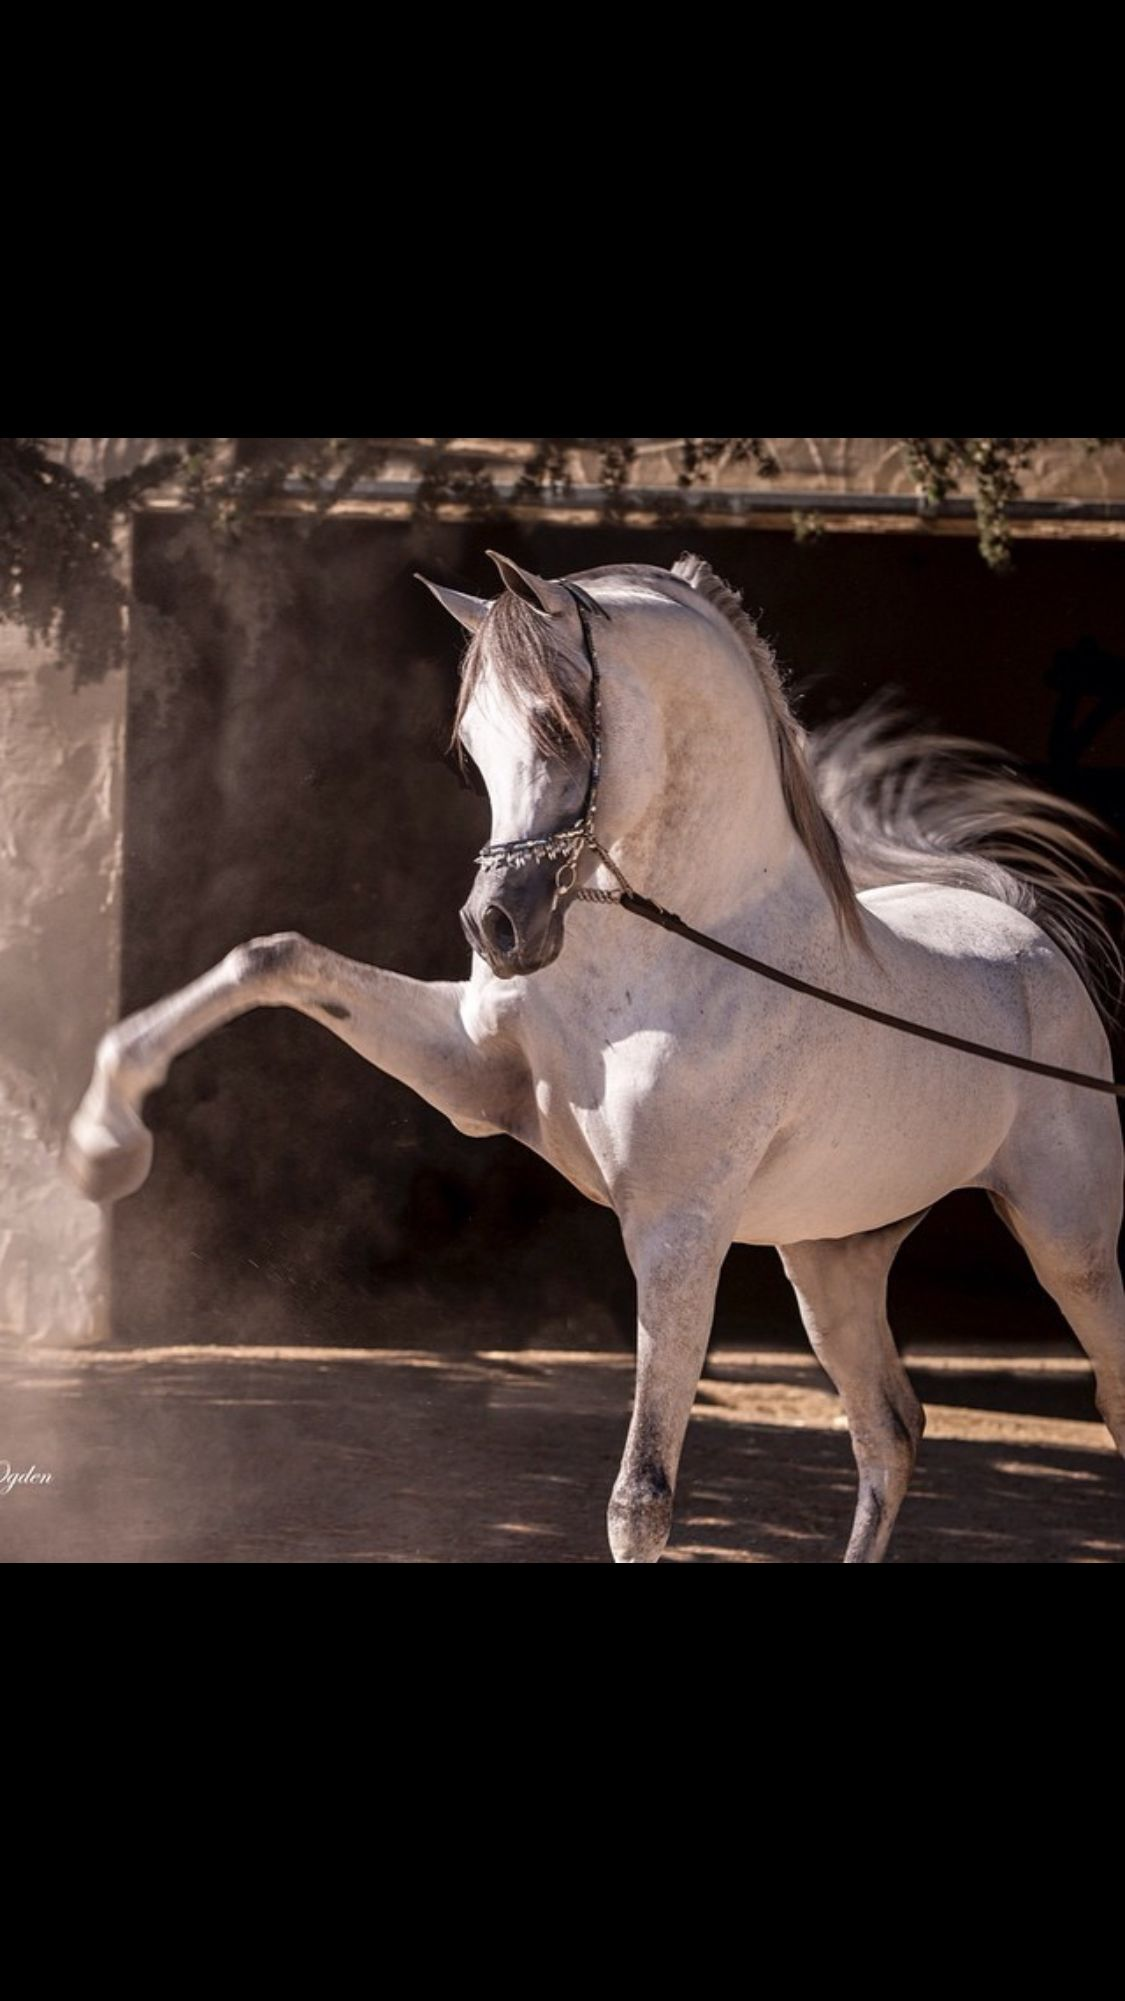 Pin By Amy Glick On My Entire World Revolves Around Them Pretty Horses Horses Arabian Horse